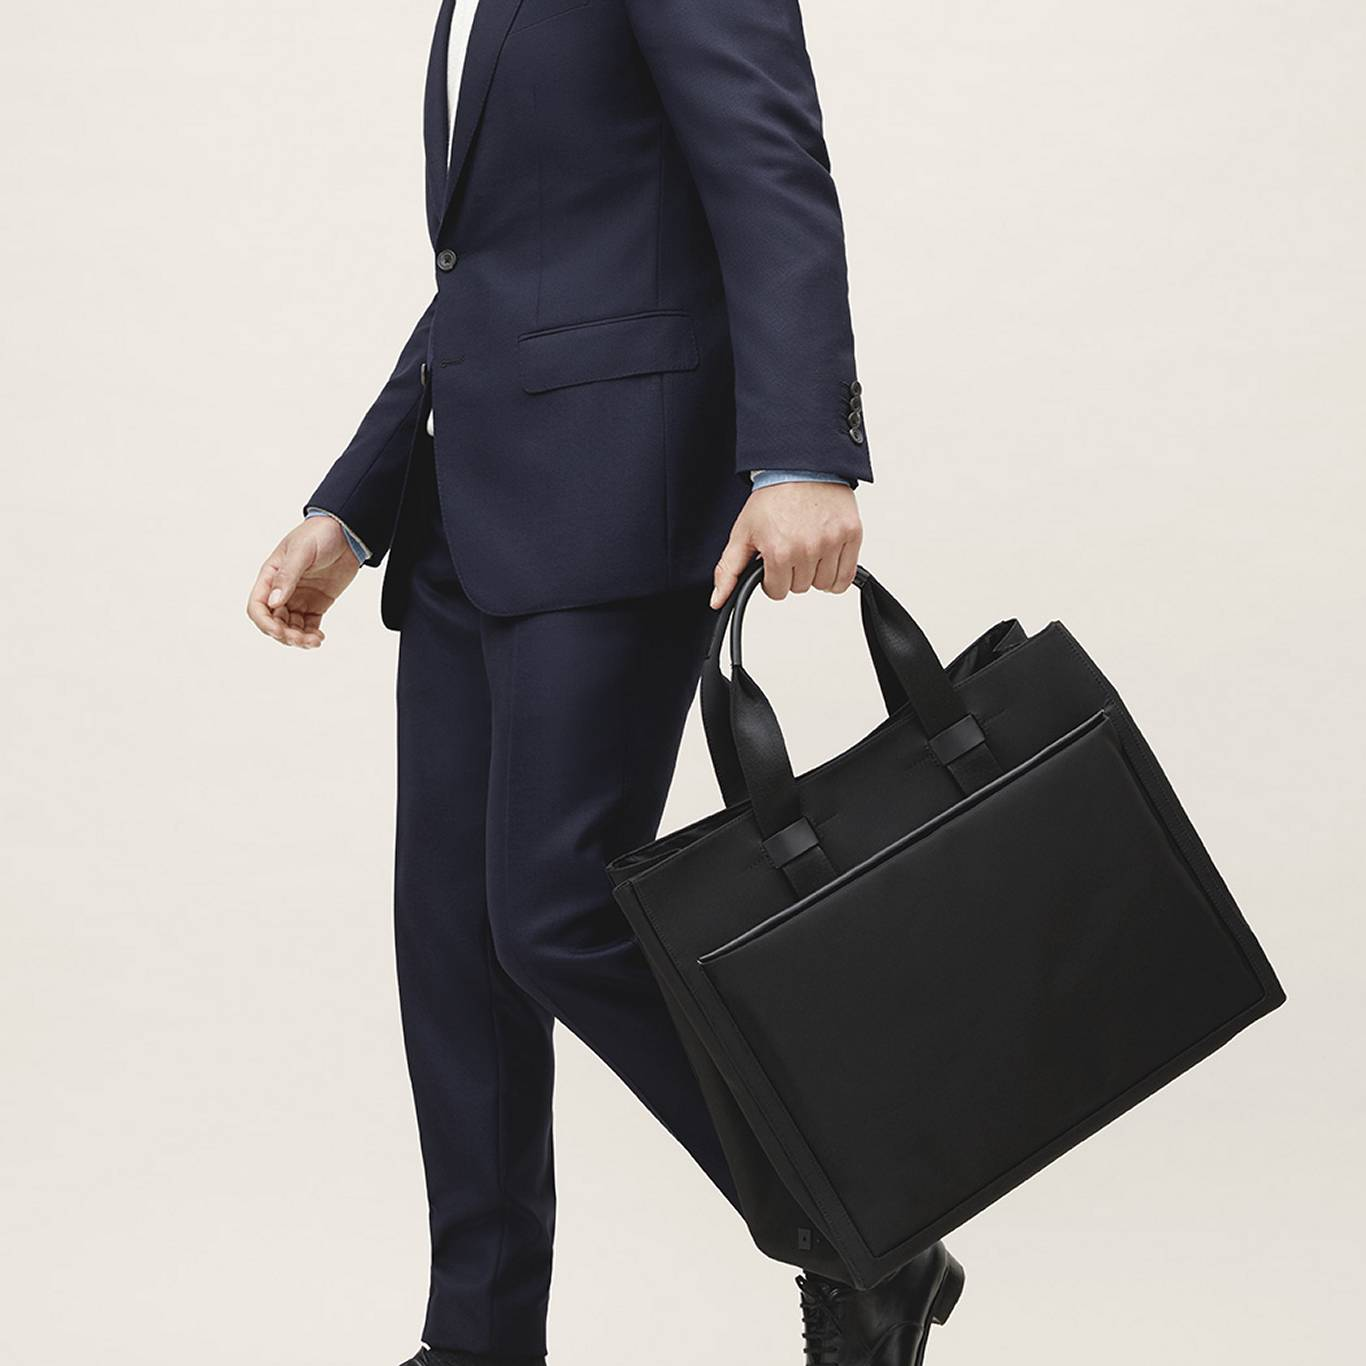 Navy suit and black tote bag